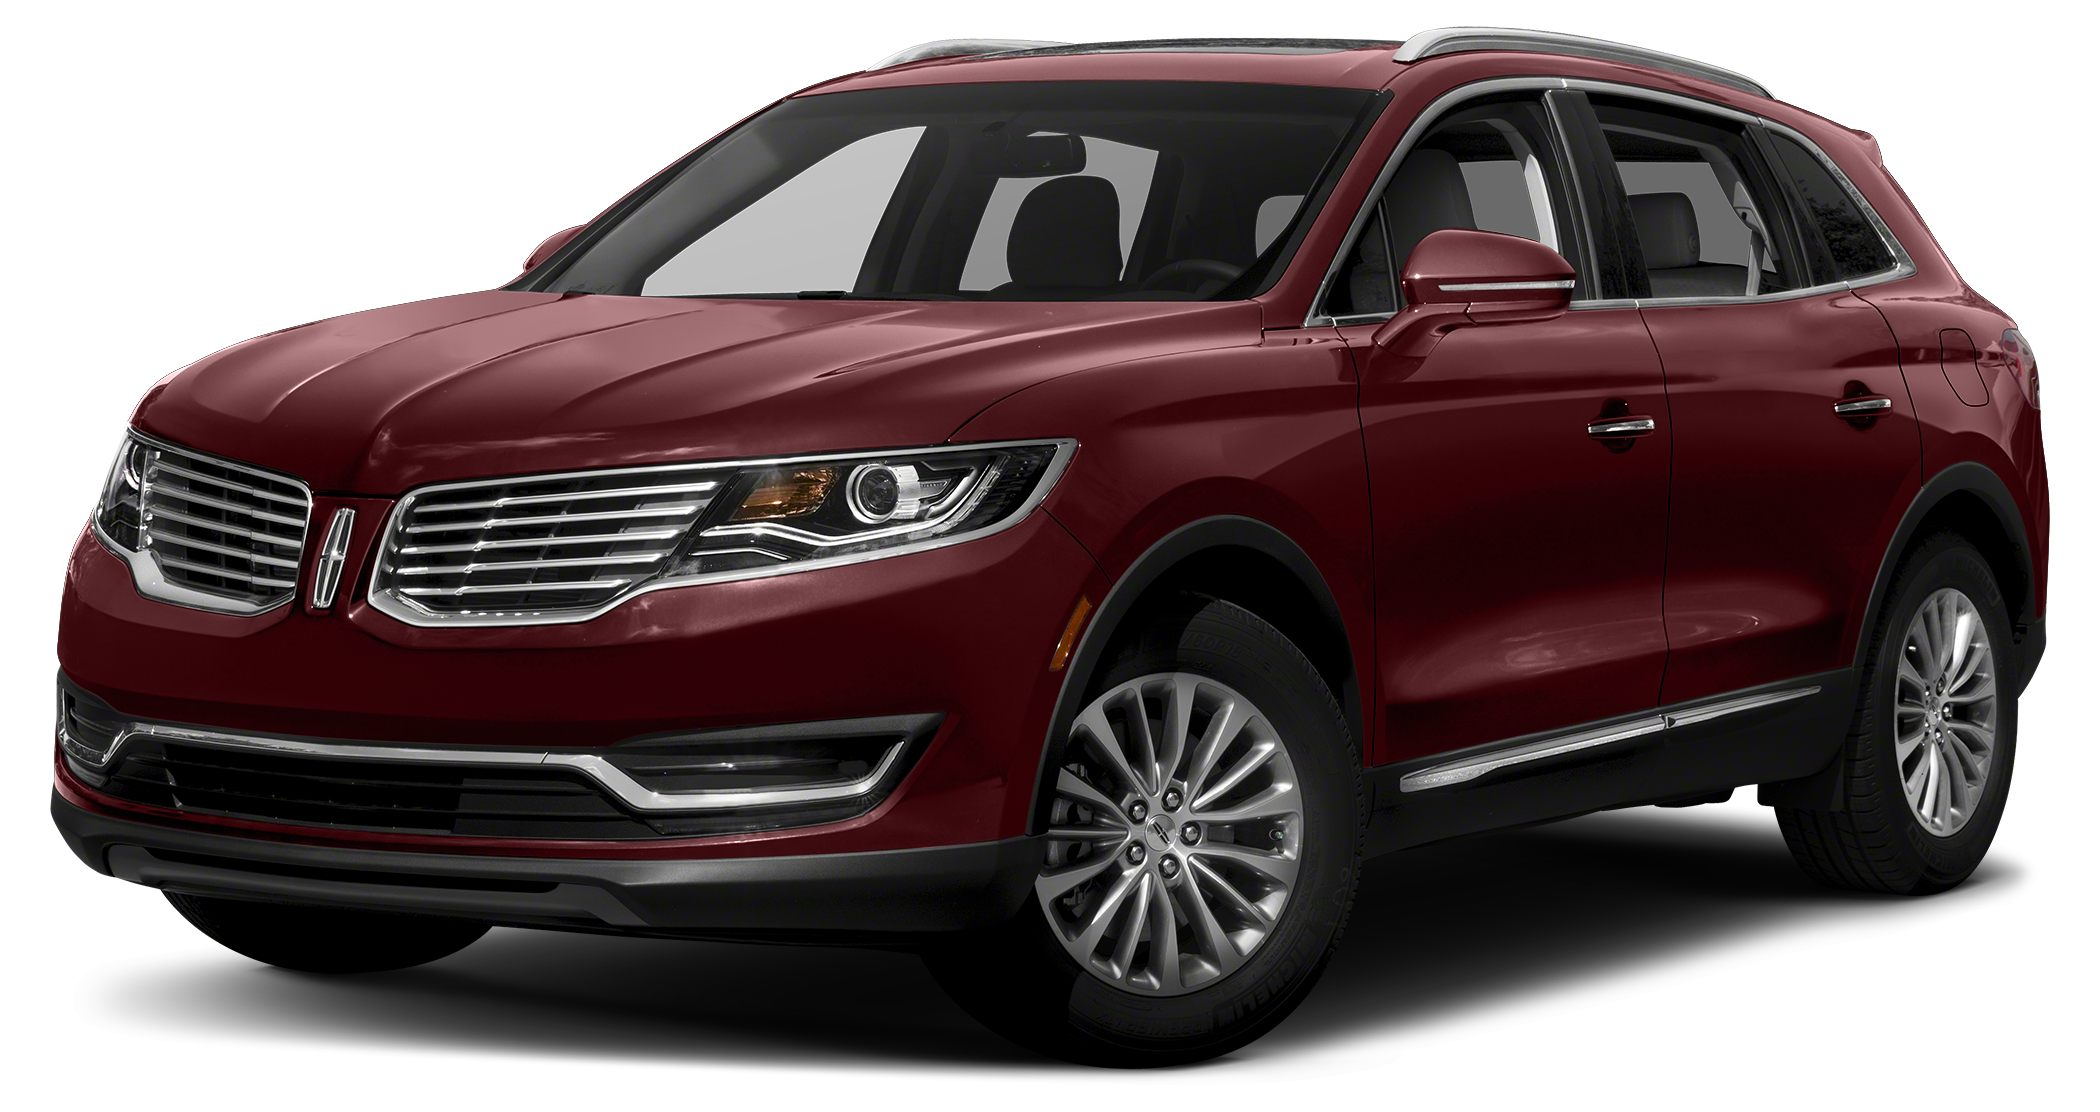 2016 Lincoln MKX Select Miles 0Color Ruby Red Metallic Tinted Clearcoat Stock LG2684 VIN 2LM